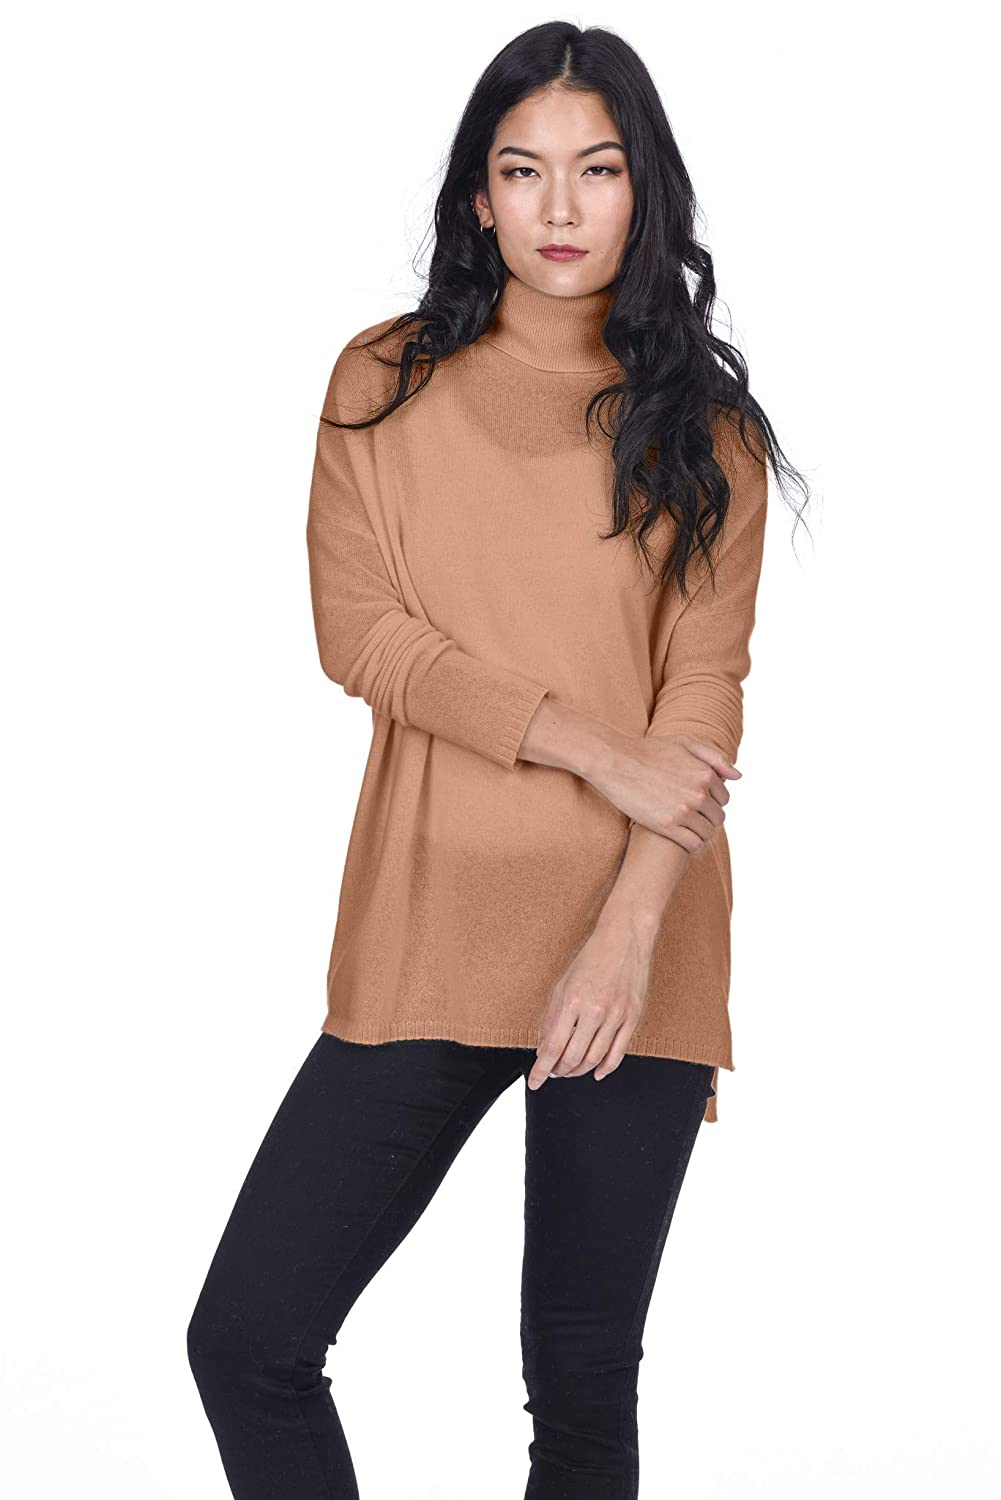 50b237ad2d6 100% Mongolian Cashmere Imported 100% Genuine 2-ply finest Inner Mongolian Cashmere  Tunic turtleneck,cable knitted ribbed design,slouchy sweater.